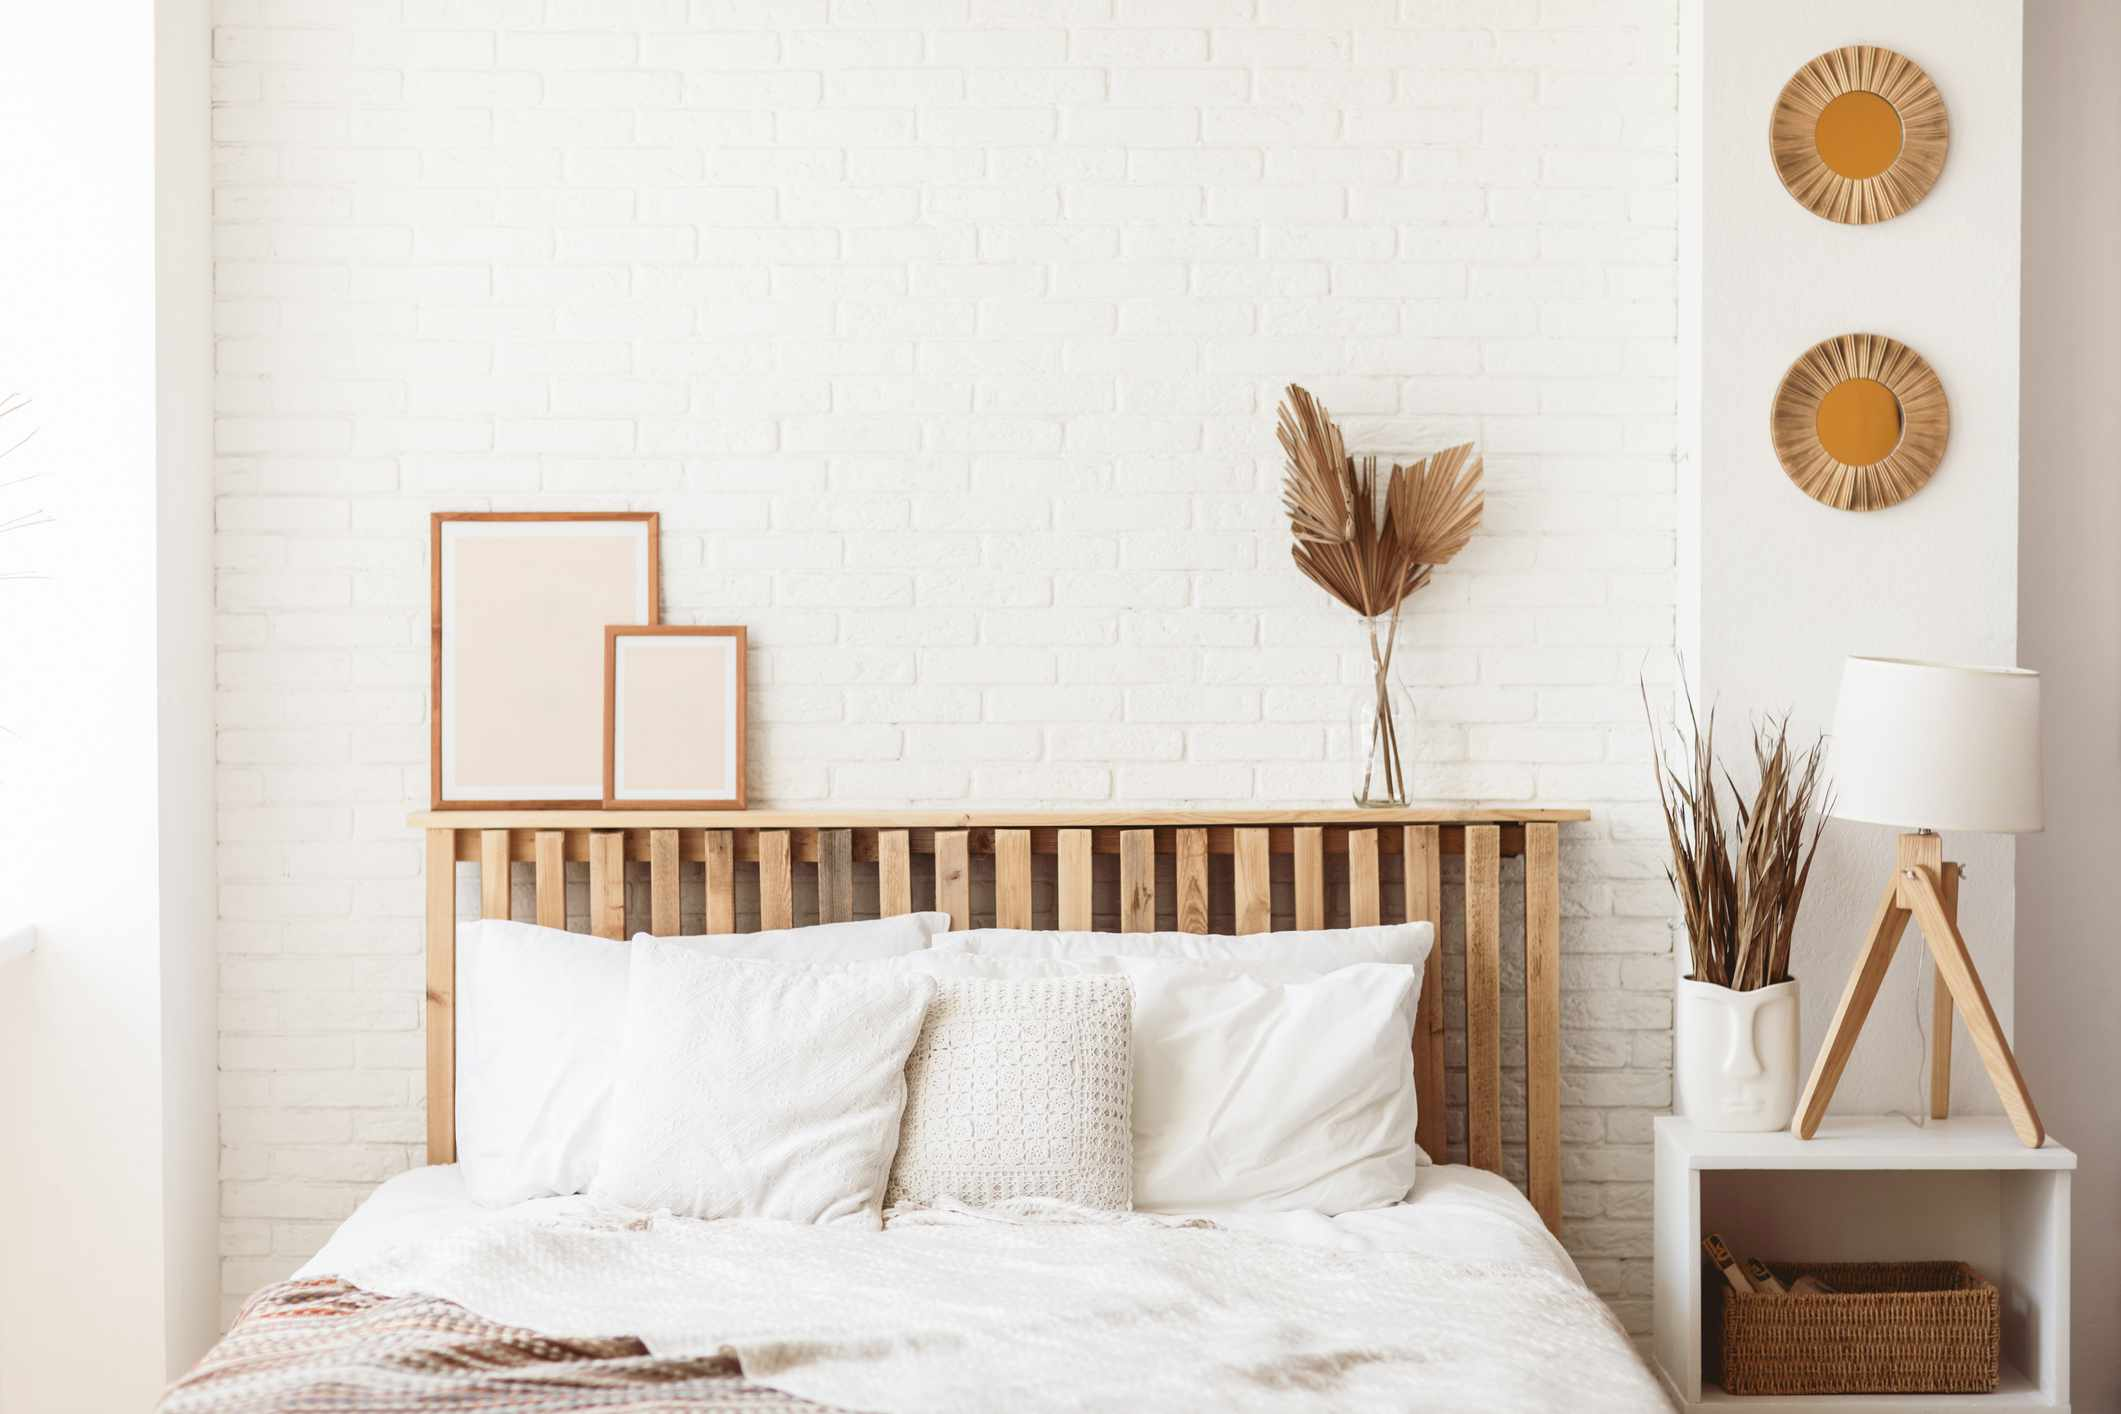 cozy minimalist bedroom with wood accents